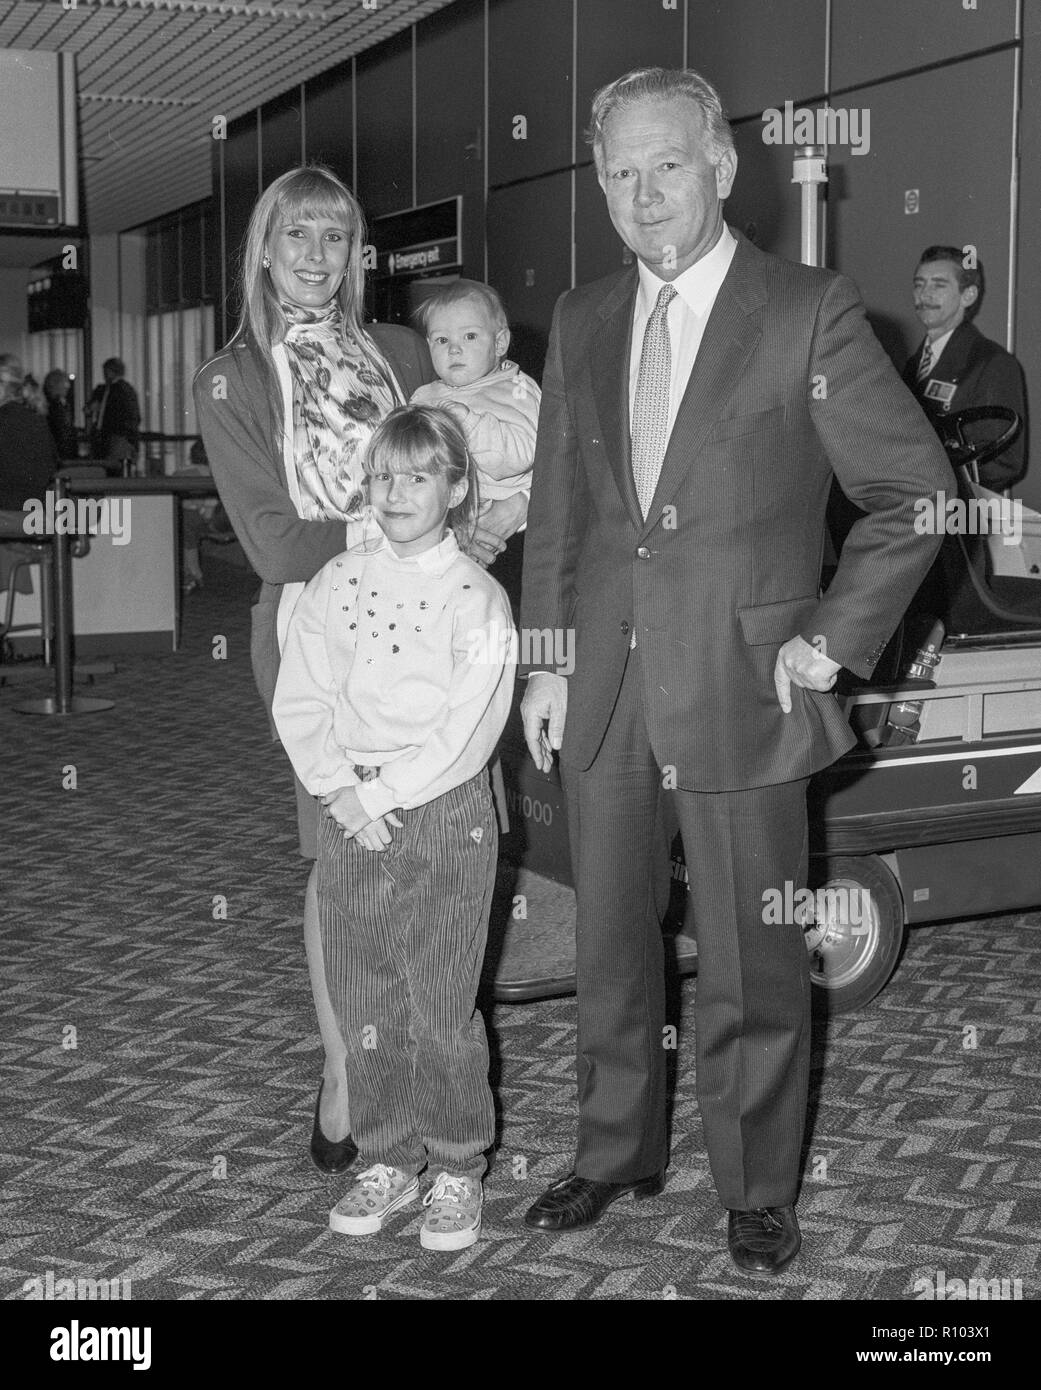 Racehorse owner and breeder Robert Sangster with wife Susan Lilley and two children  leaving Heathrow in February 1988 - Stock Image